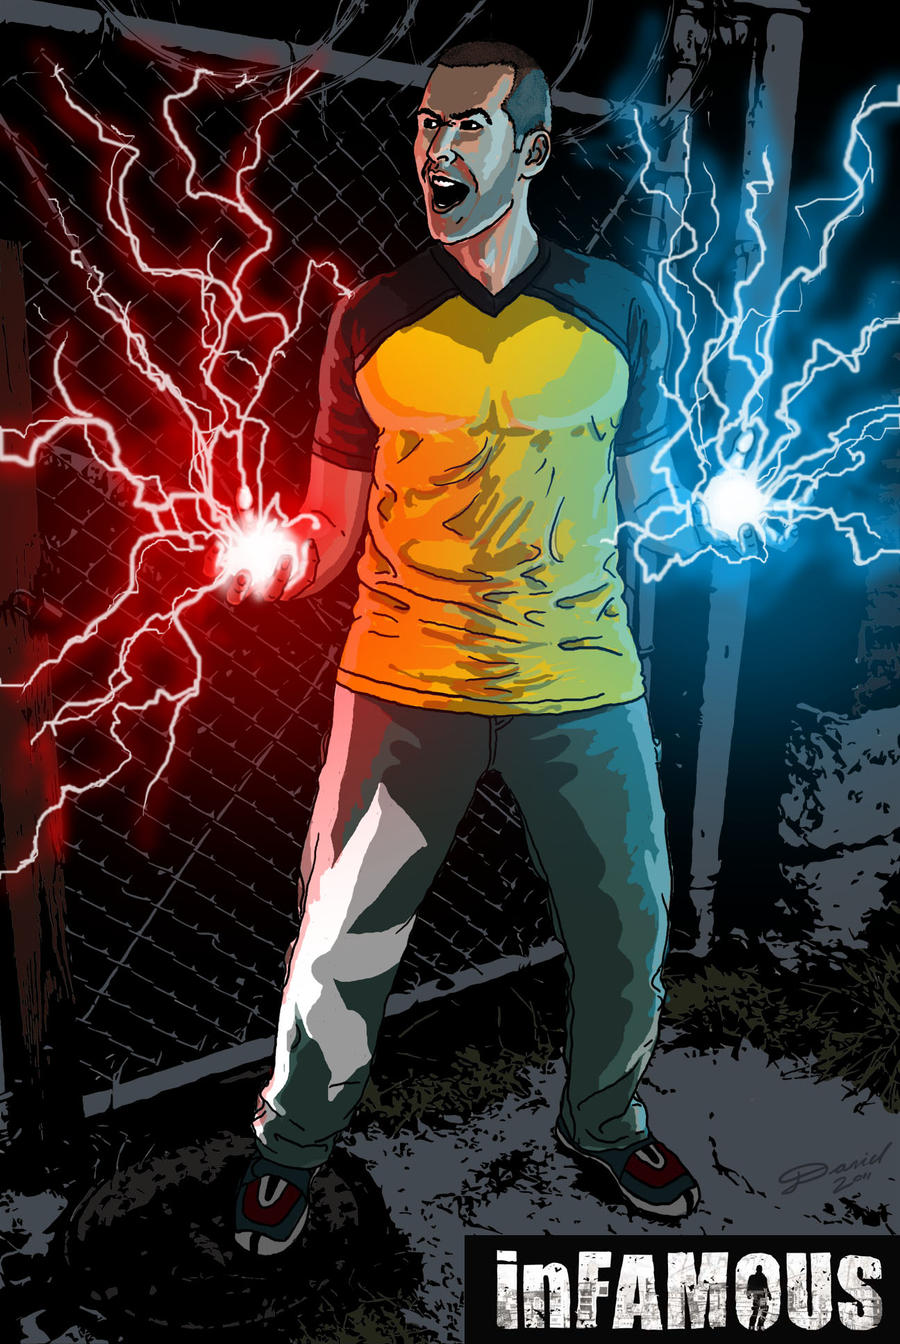 Infamous Wallpaper Hd Cole - inFAMOUS by poi...